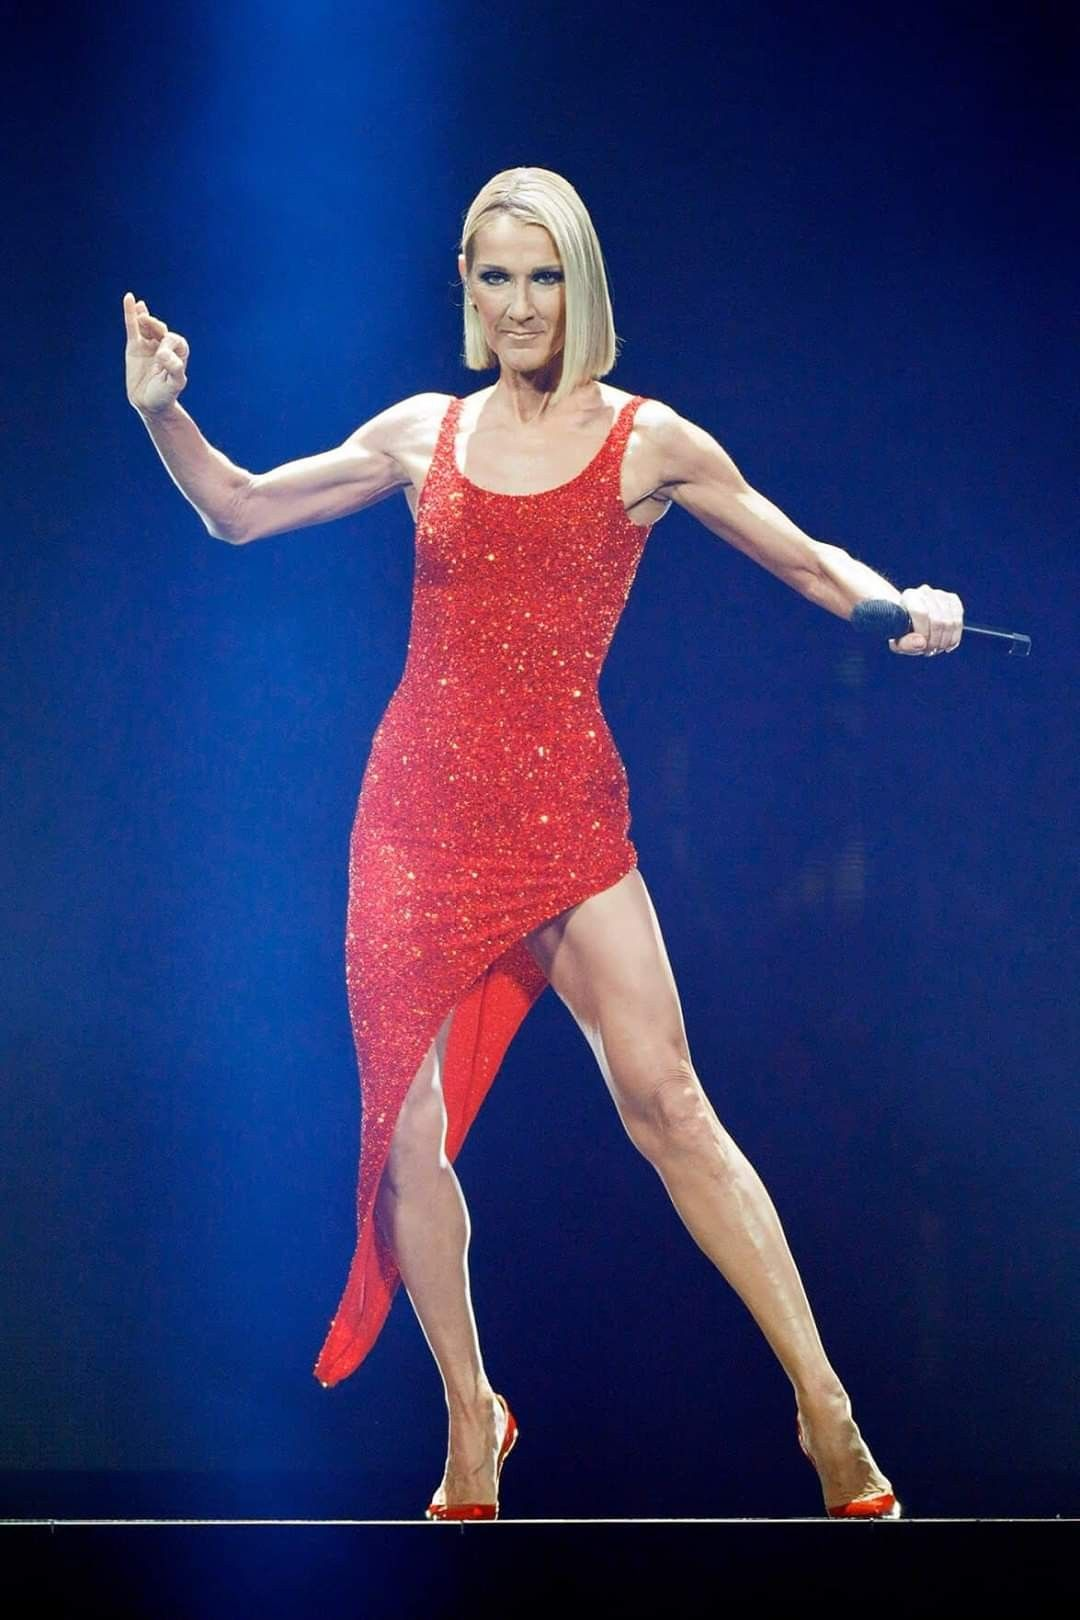 Pin by HML Space on Céline Dion in 2020 Celine dion